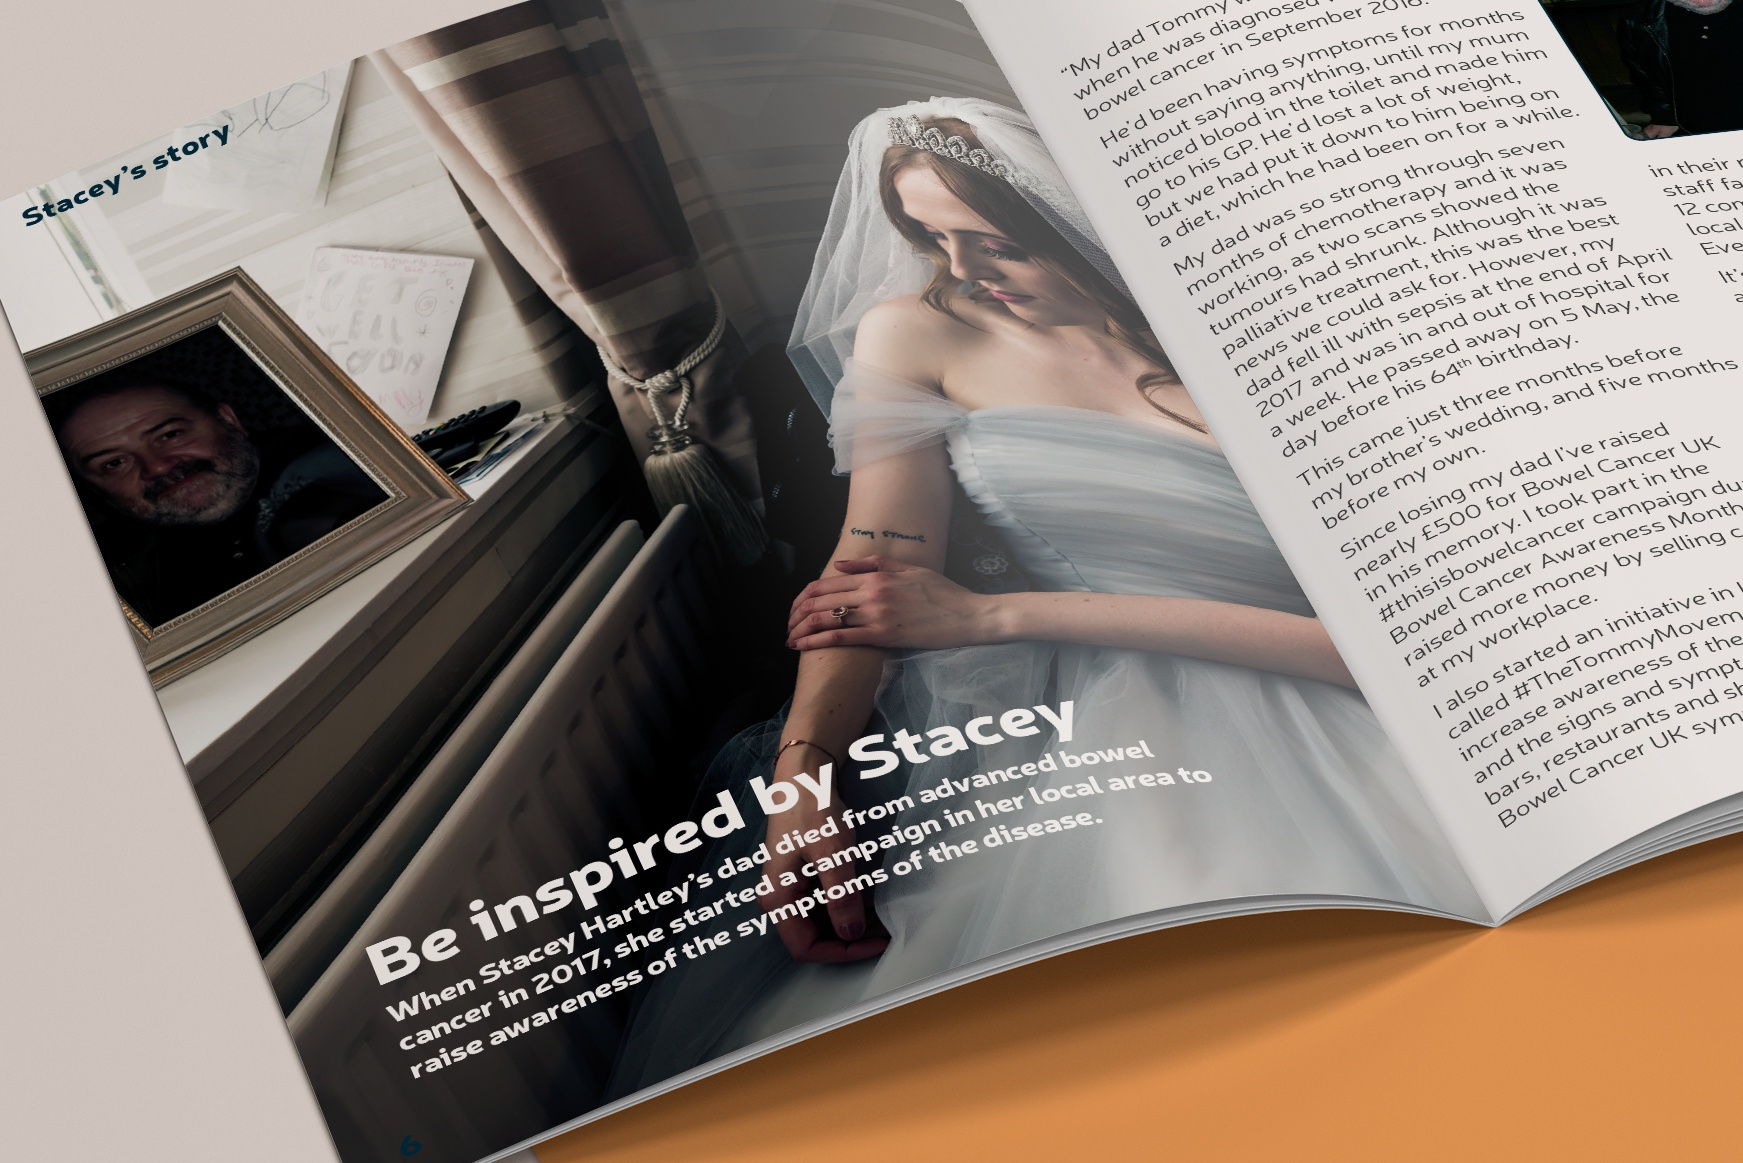 A feature spread from the magazine